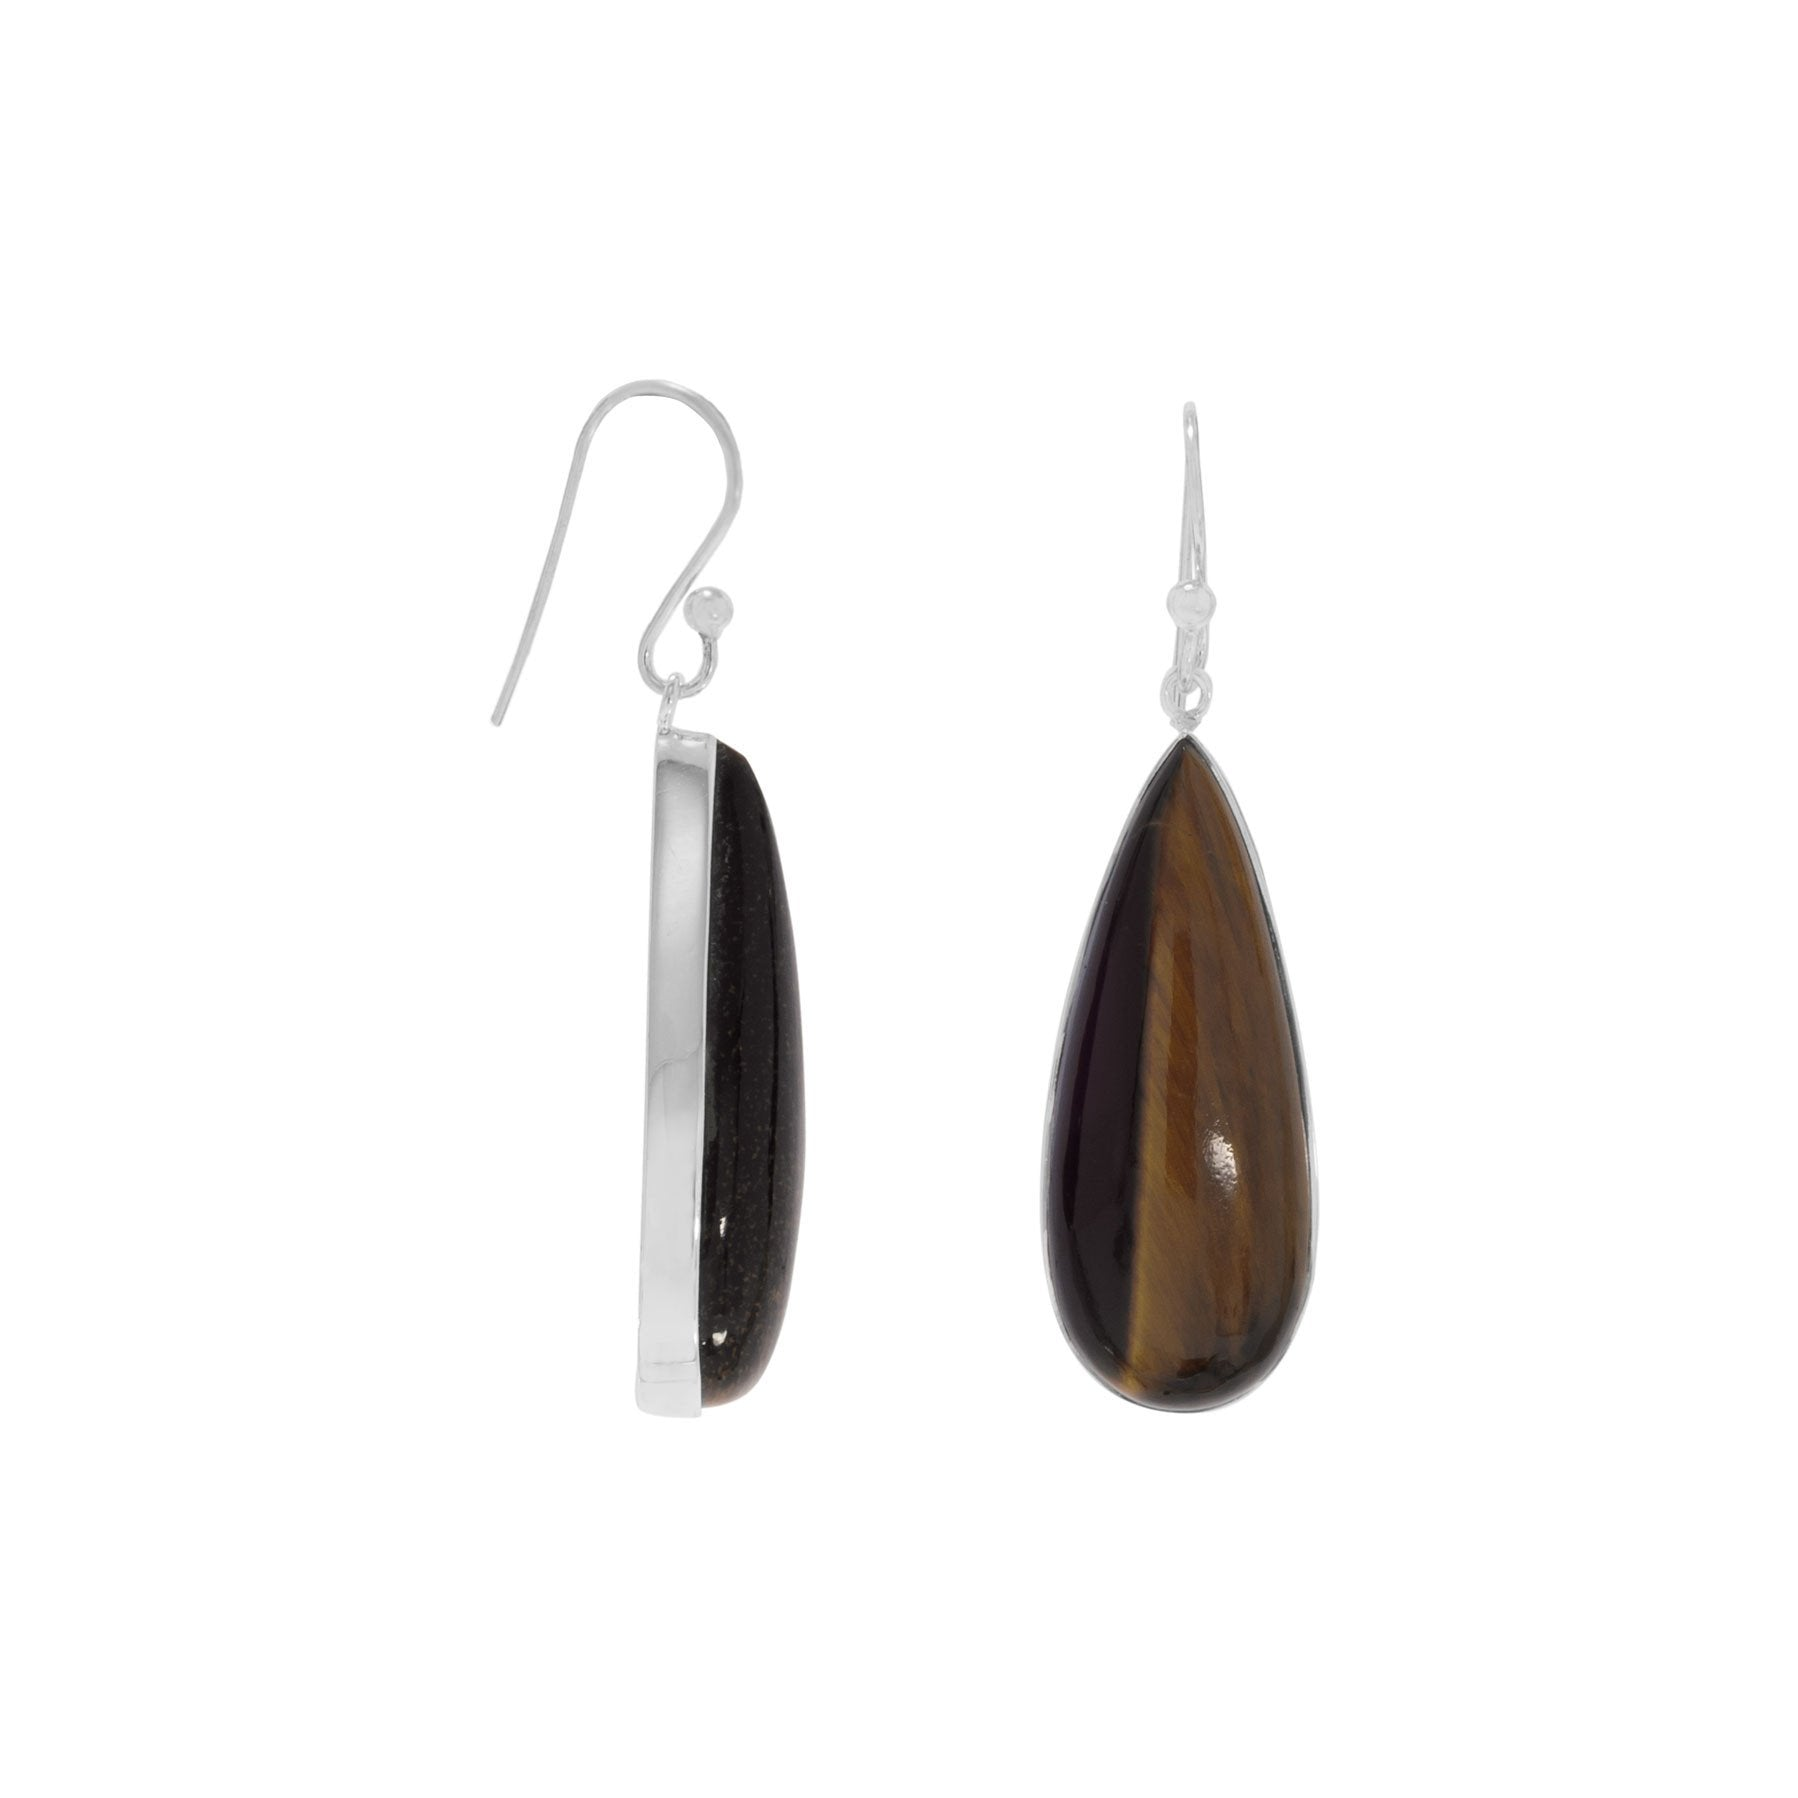 Tiger's Eye Drop Earrings - Rocky Mt. Outlet Inc - Shop & Save 24/7